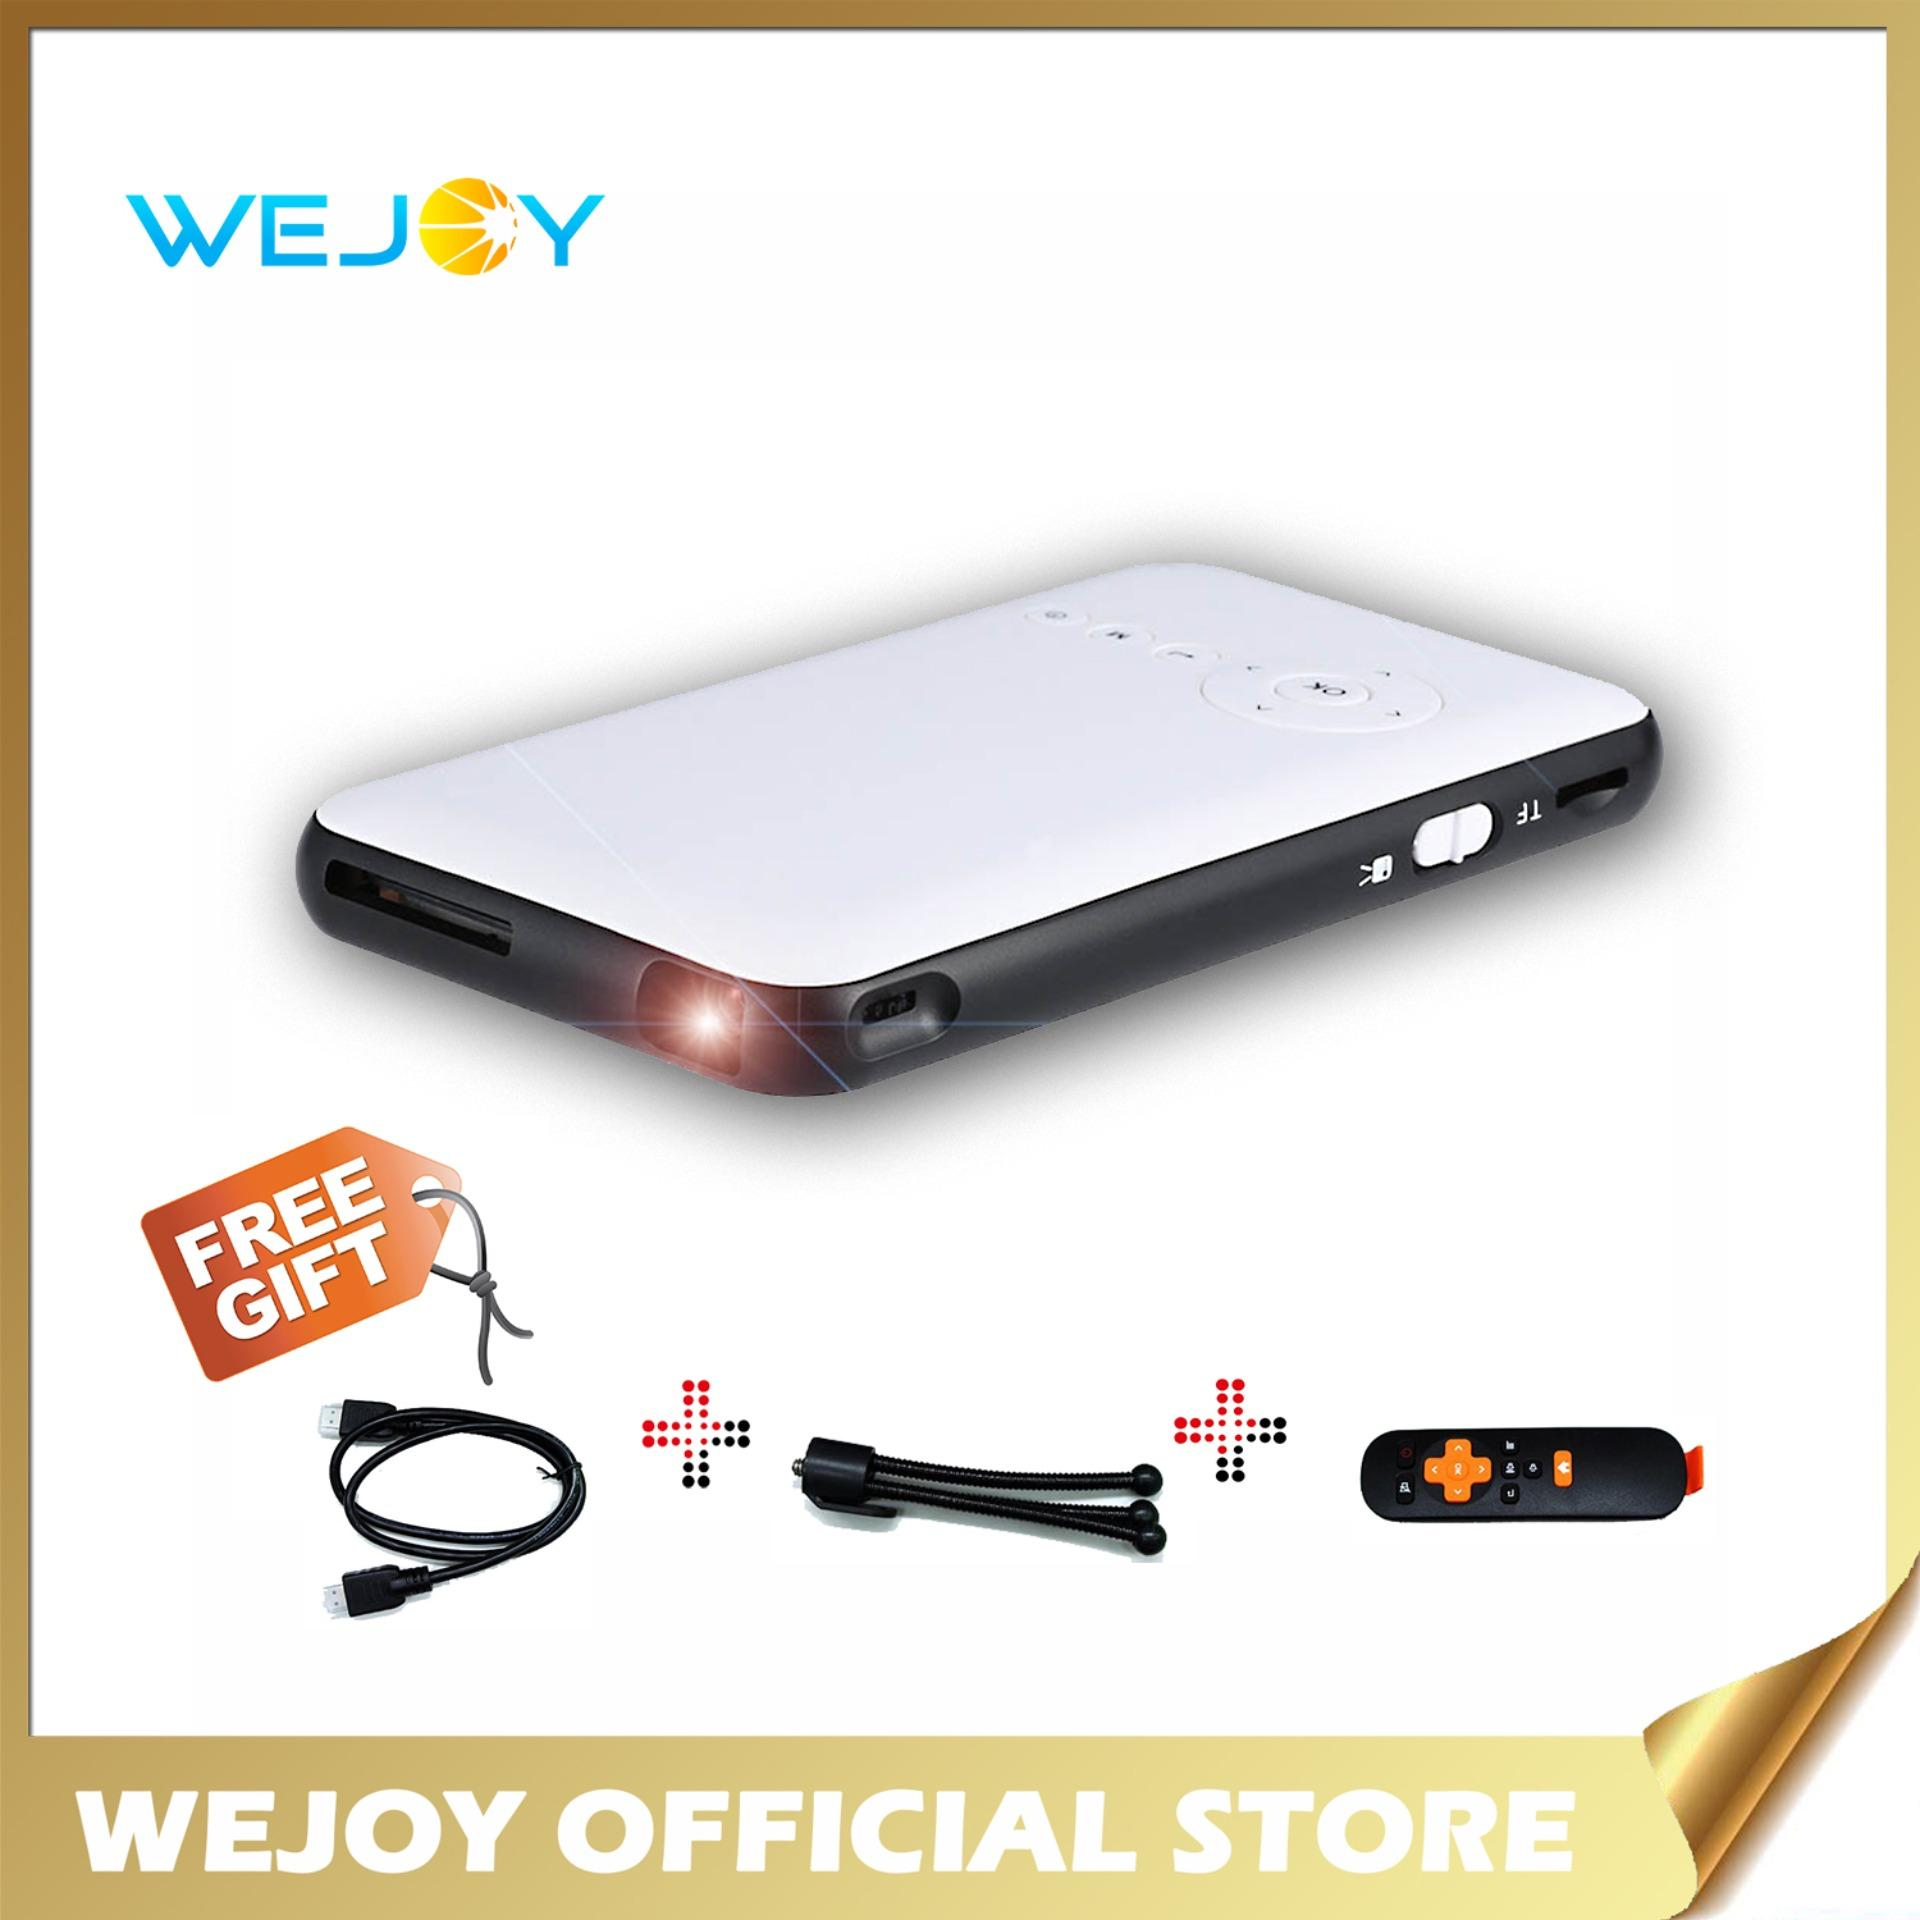 4c5bf20352c41e Wejoy DL-S6 Portable Handy LED 1080p Full HD Mini Projector Mobile Cinema  with Android